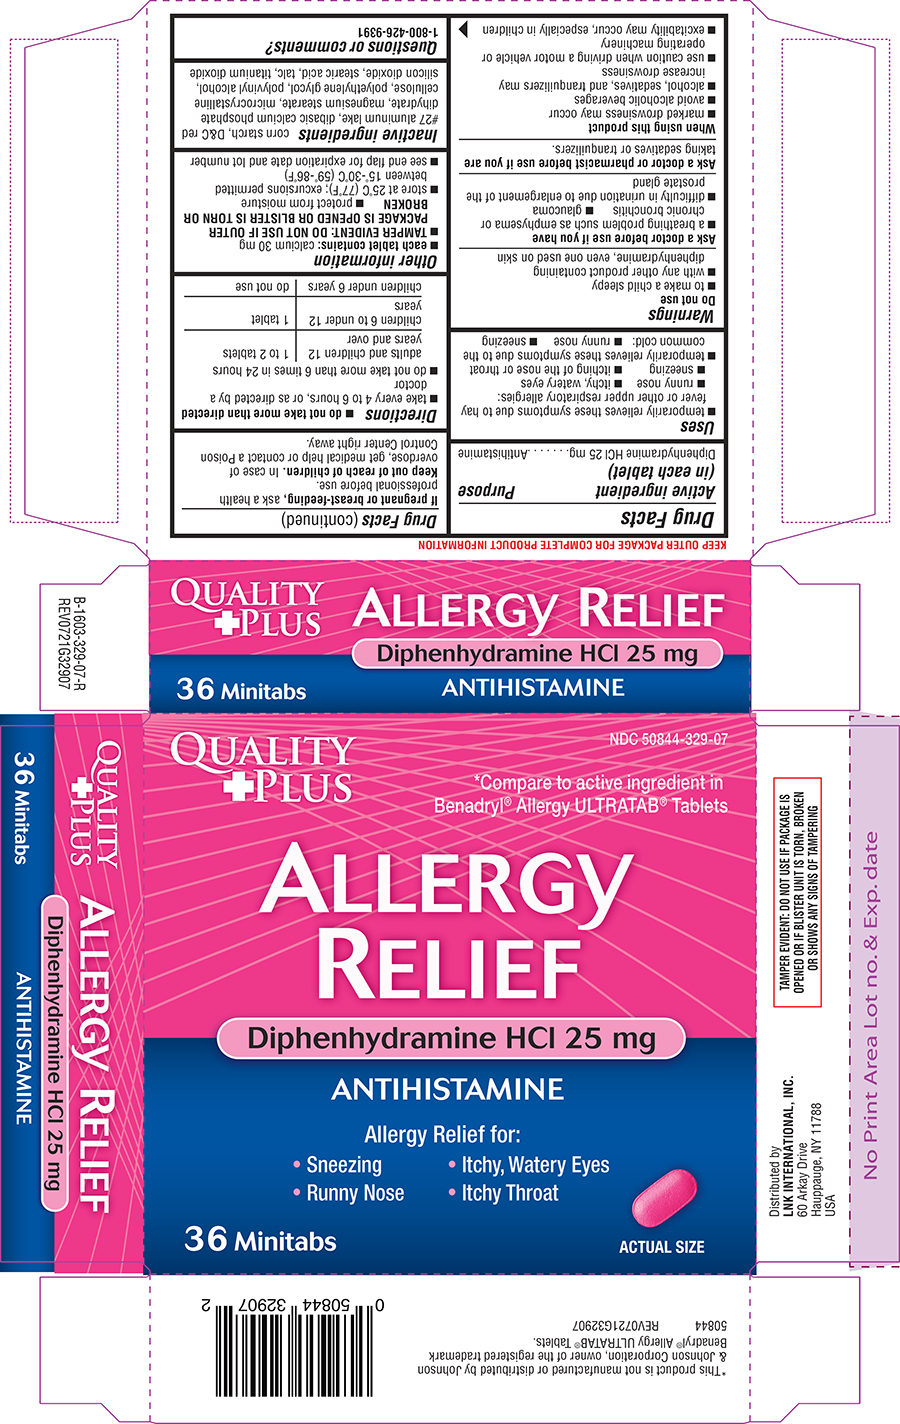 quality plus allergy relief reviews